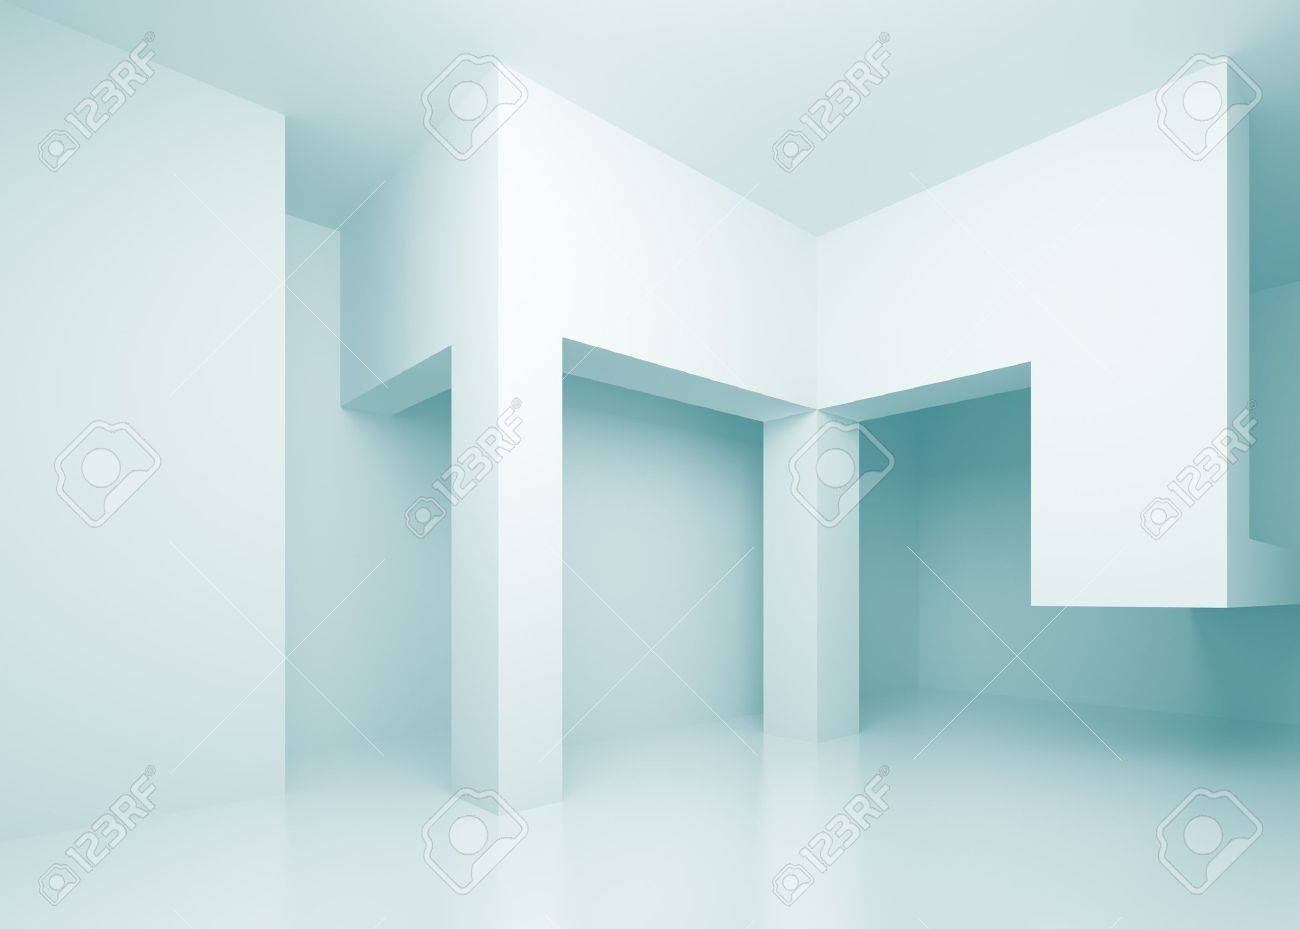 Abstract Architecture Background Stock Photo - 10438653